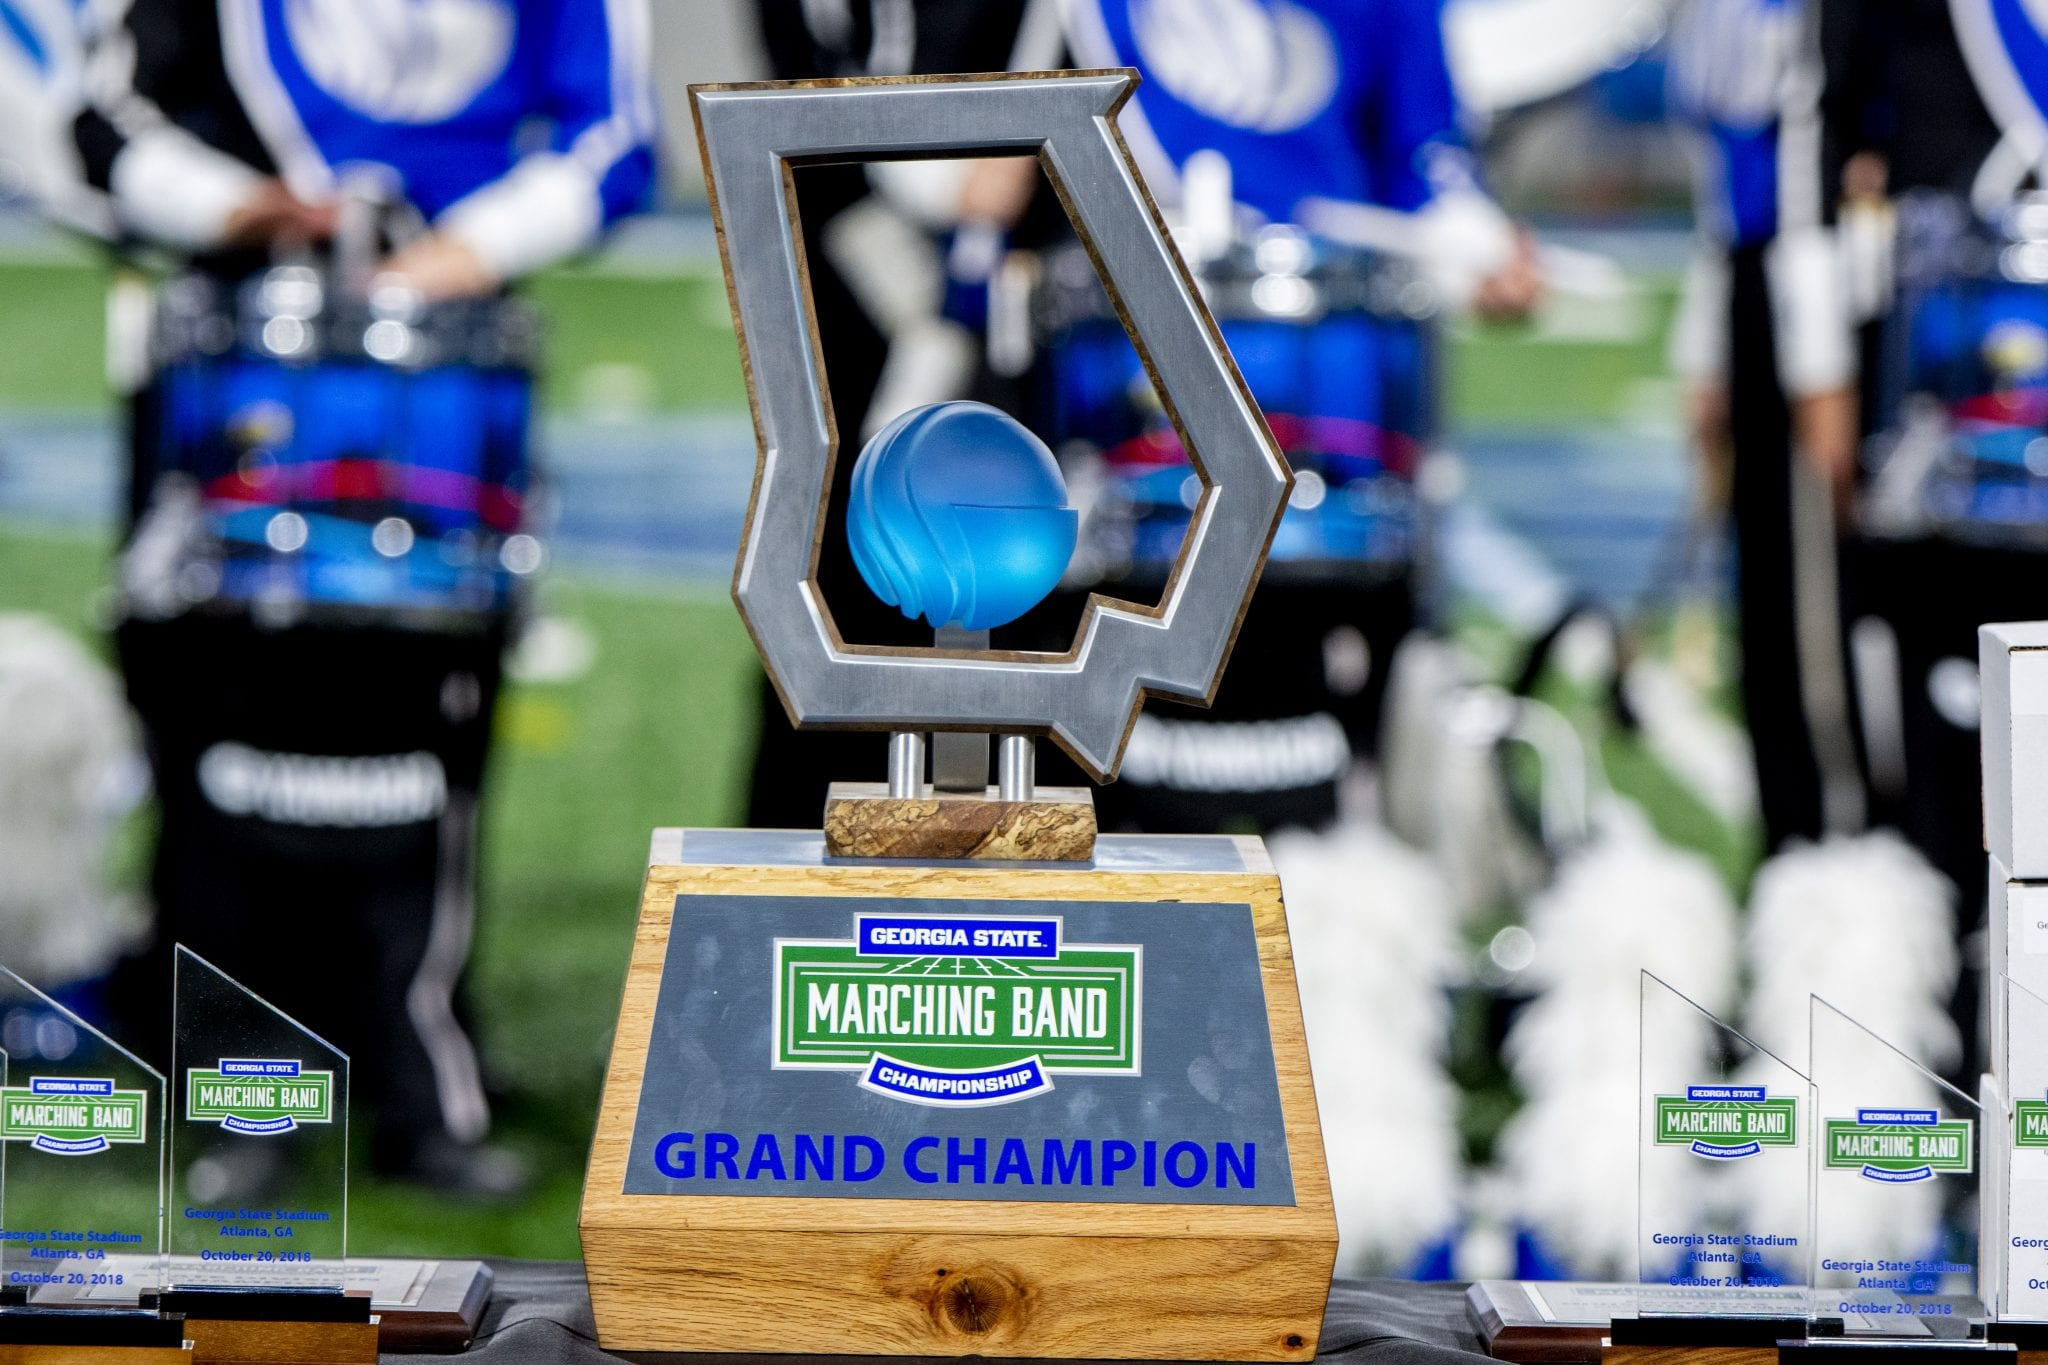 Georgia State Marching Band Championship Grand Champion Trophy